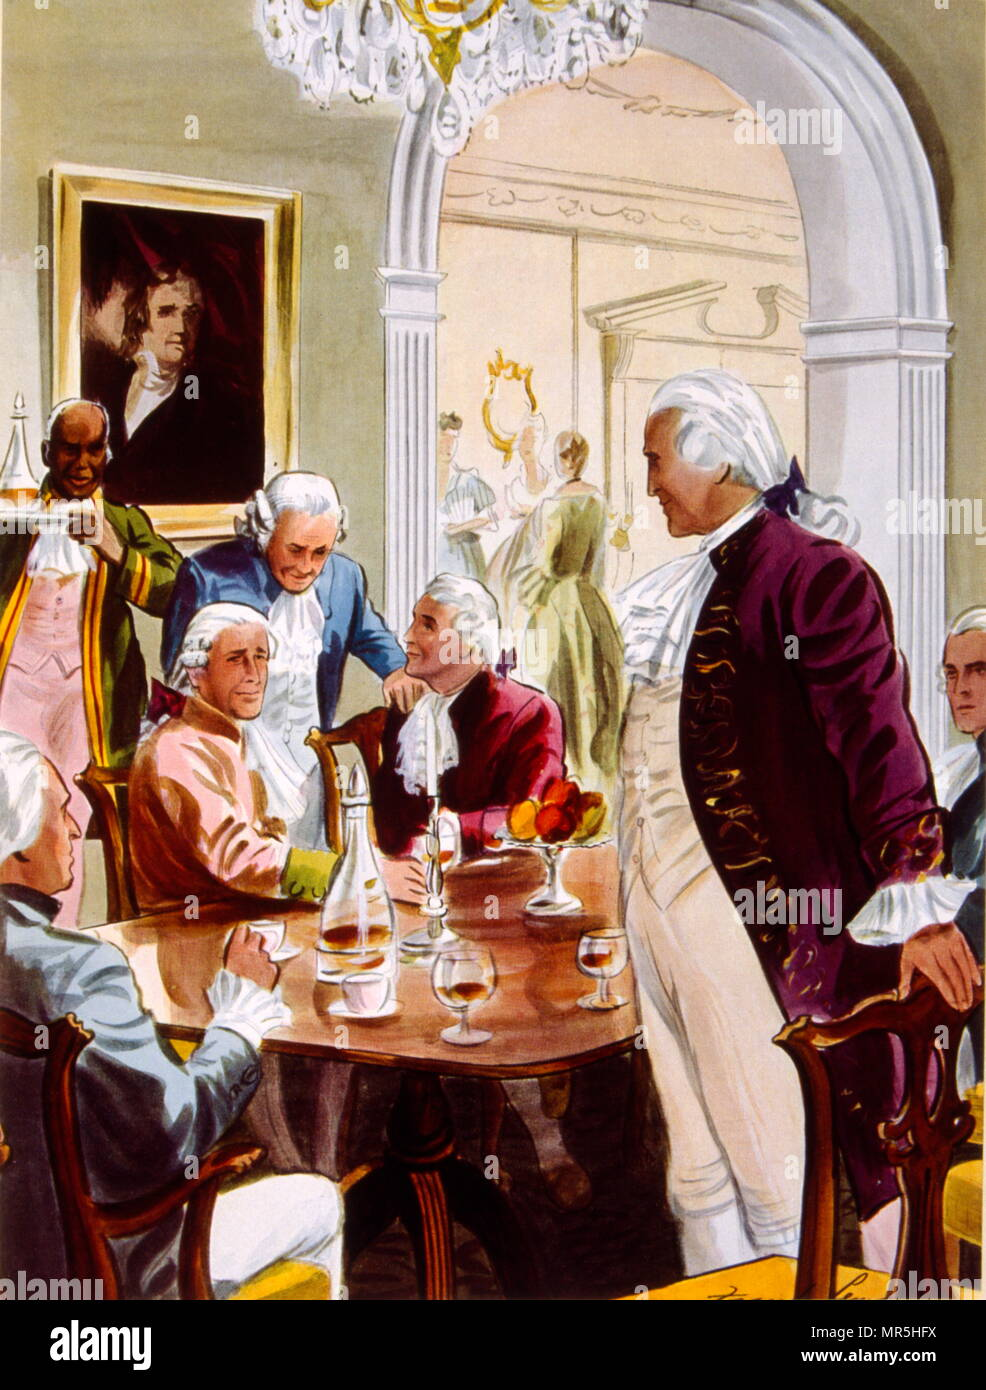 An African American slave servant serves drinks to George Washington at a meeting with the founding fathers of America at the time of the first Presidency 1789-97. Cognac Hennessy advertisement,  1938 - Stock Image